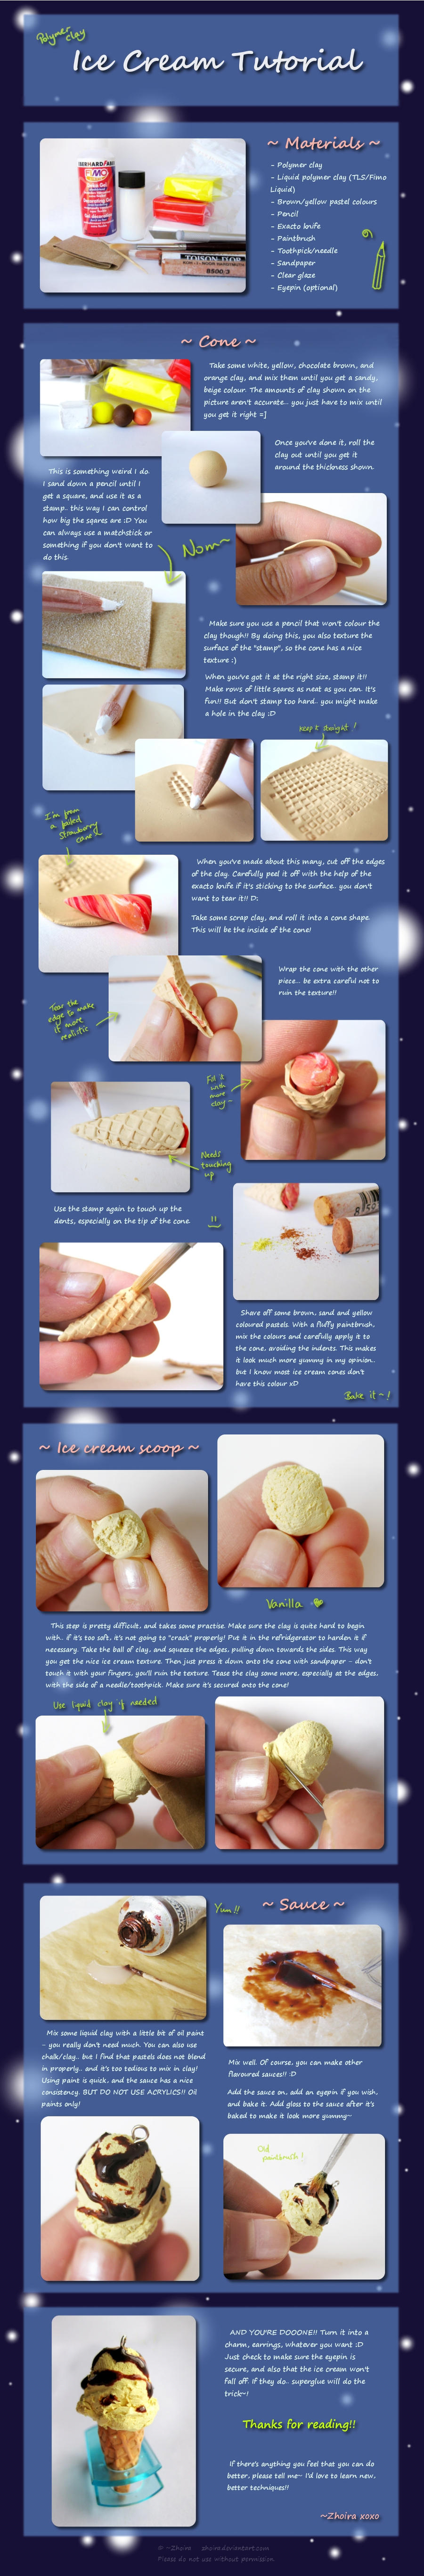 A LOOONG Ice Cream Tutorial by Zhoira